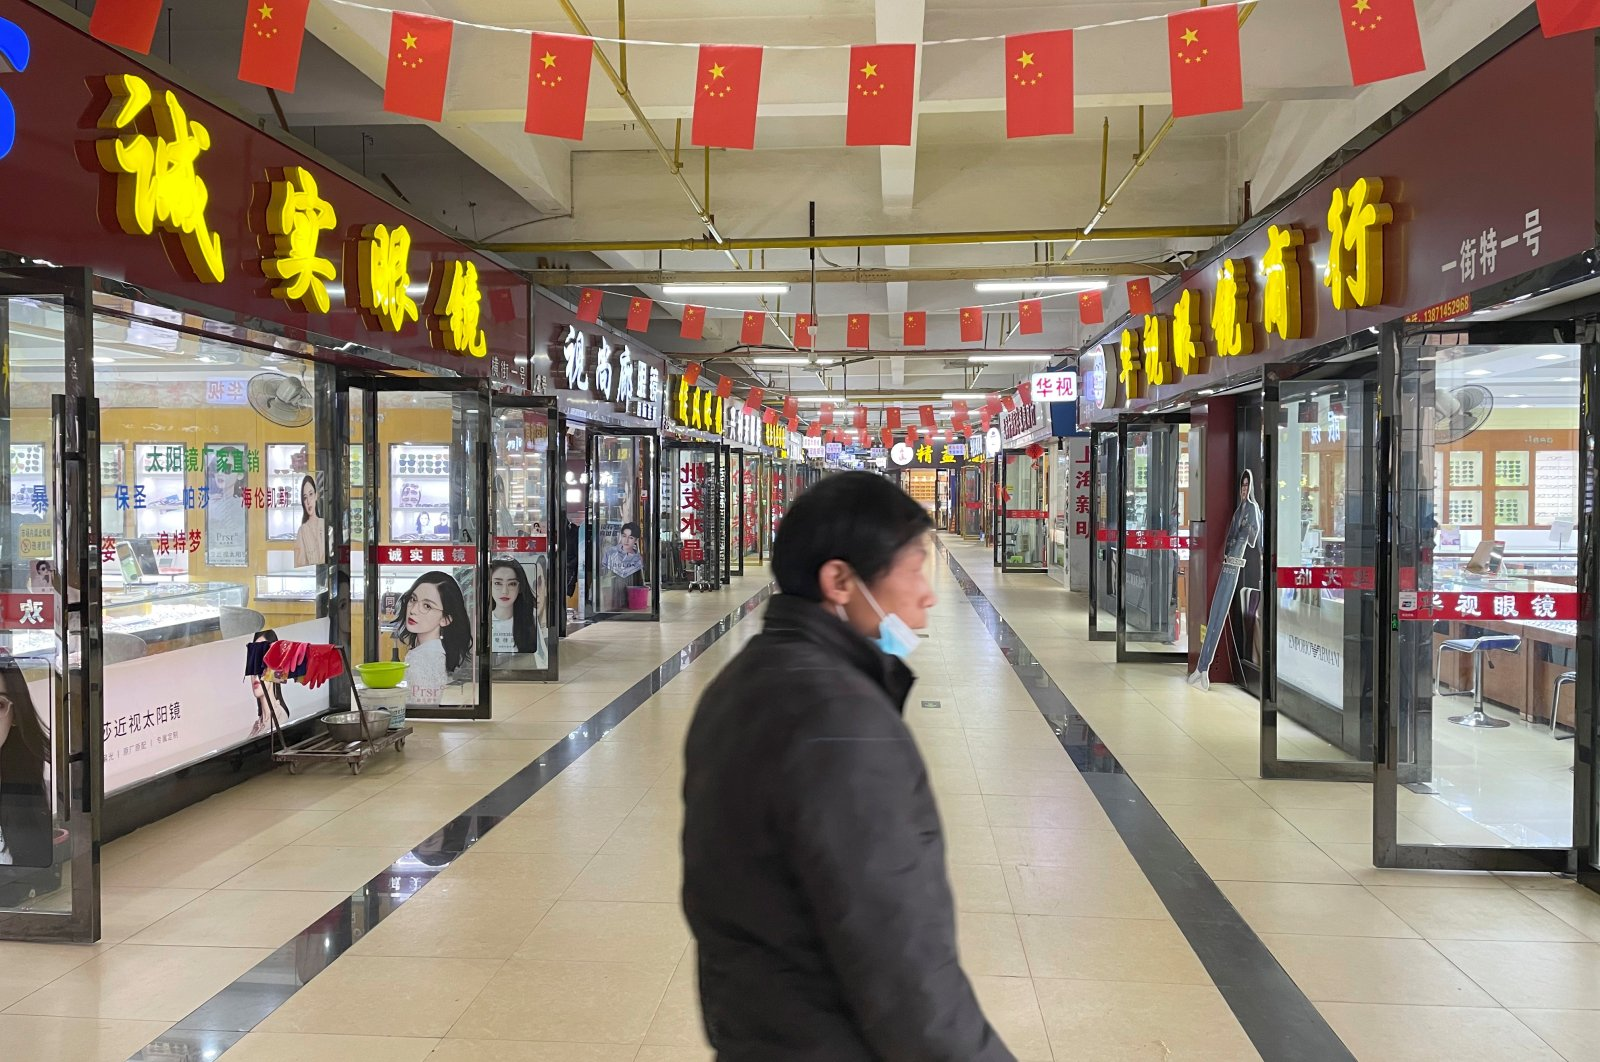 Optical shops are seen open which were originally at the second floor of the Huanan seafood market, Wuhan, China, Dec. 8, 2020. (REUTERS Photo)